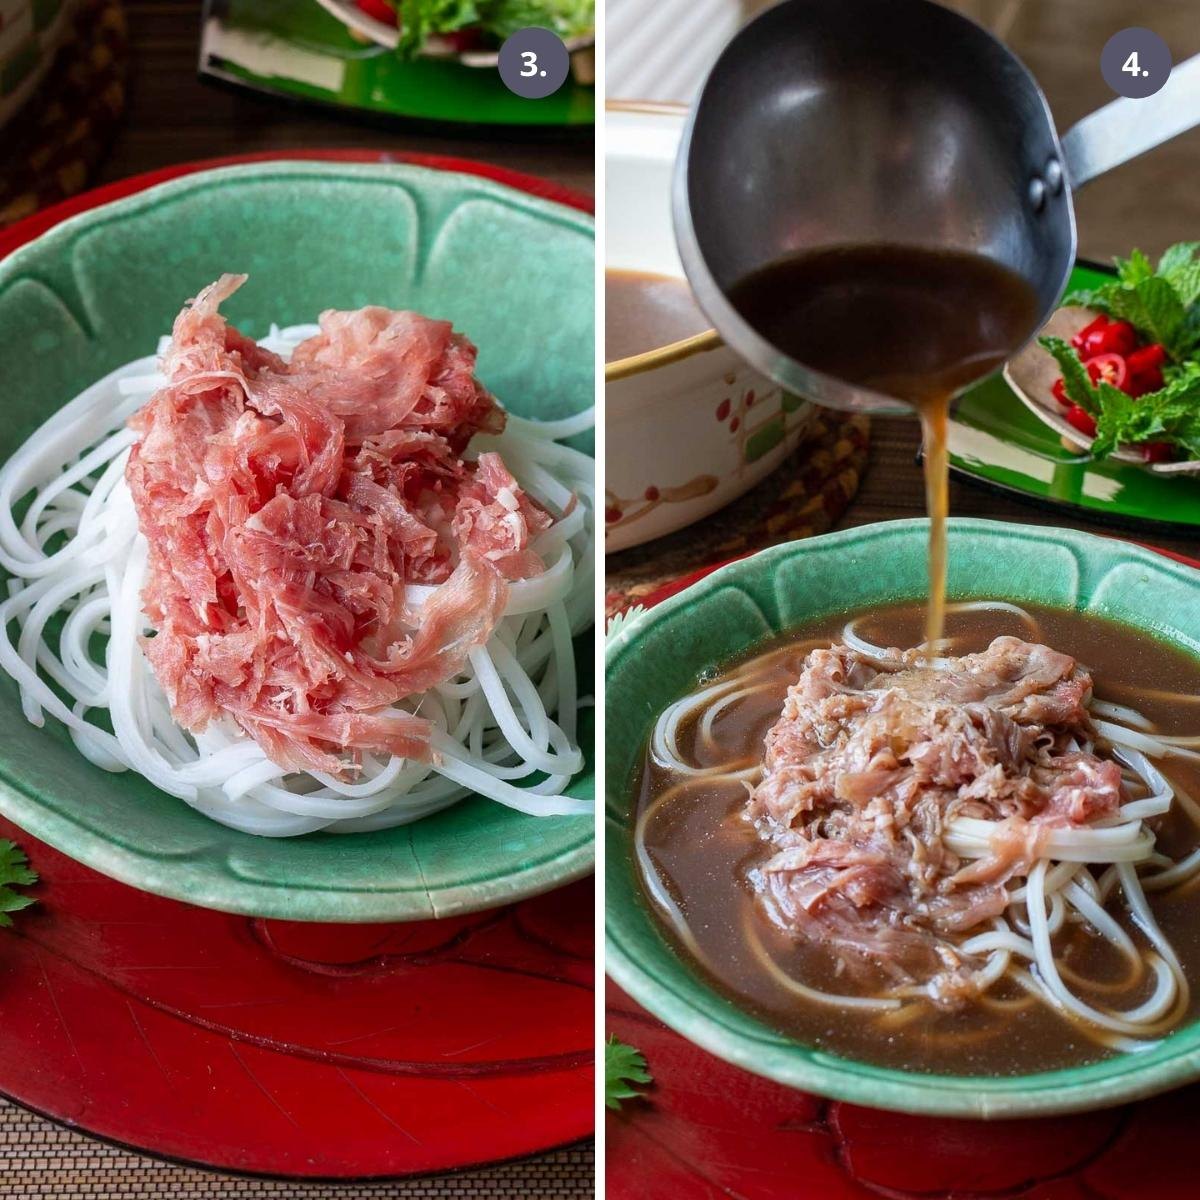 Chipped beef over noodles and beef pho broth poured over beef and noodles.